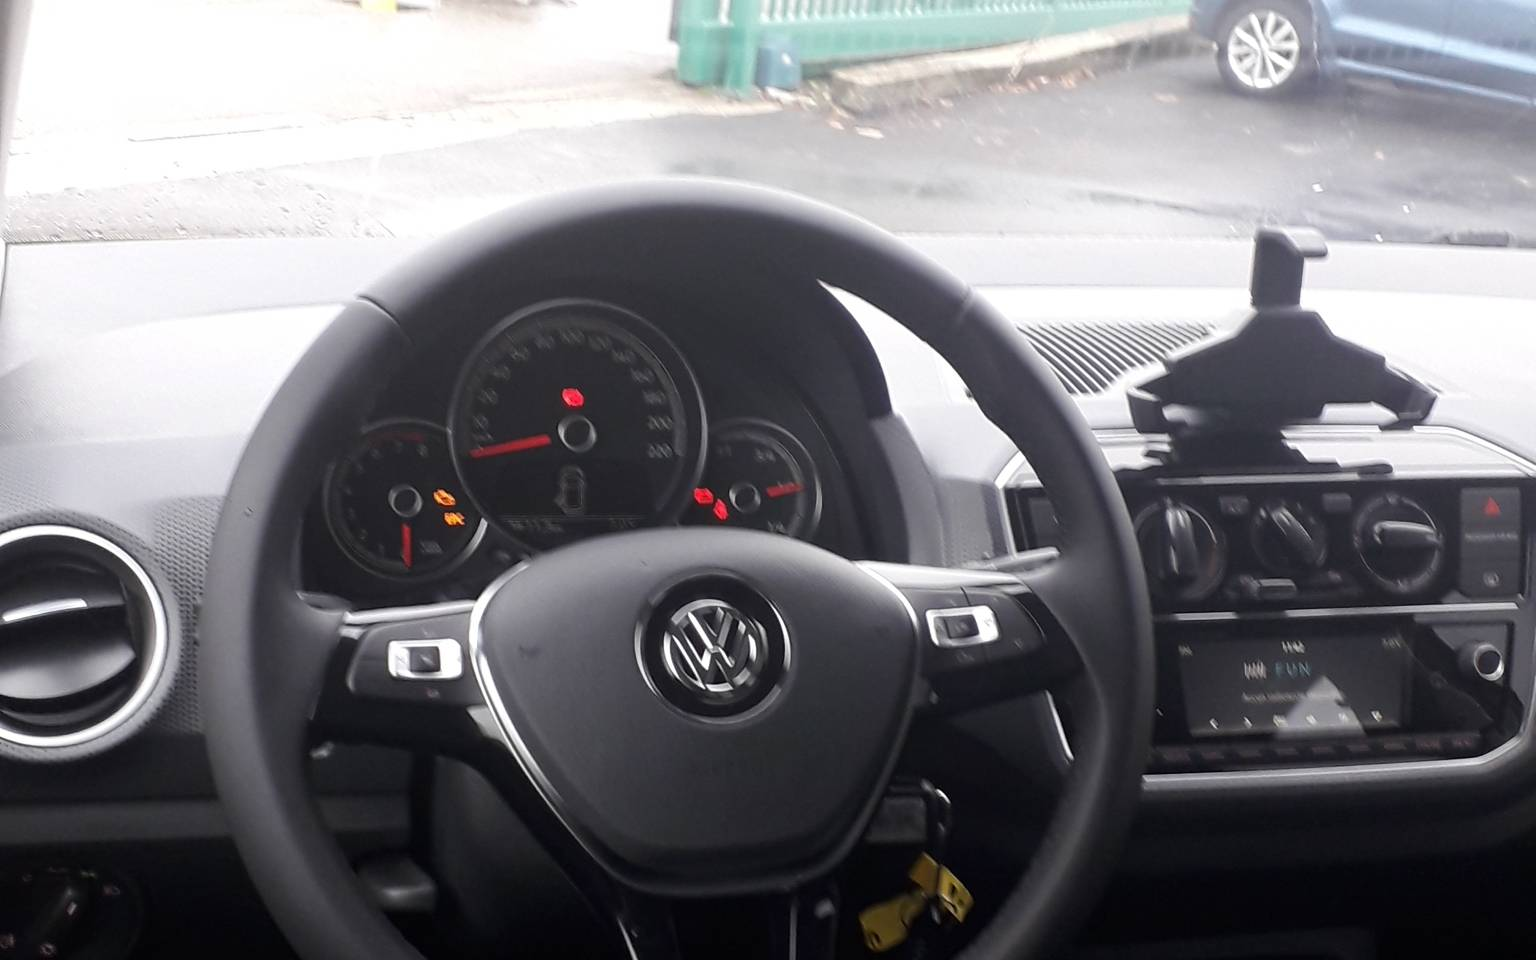 7 - Up 1.0 60 BlueMotion Technology BVM5